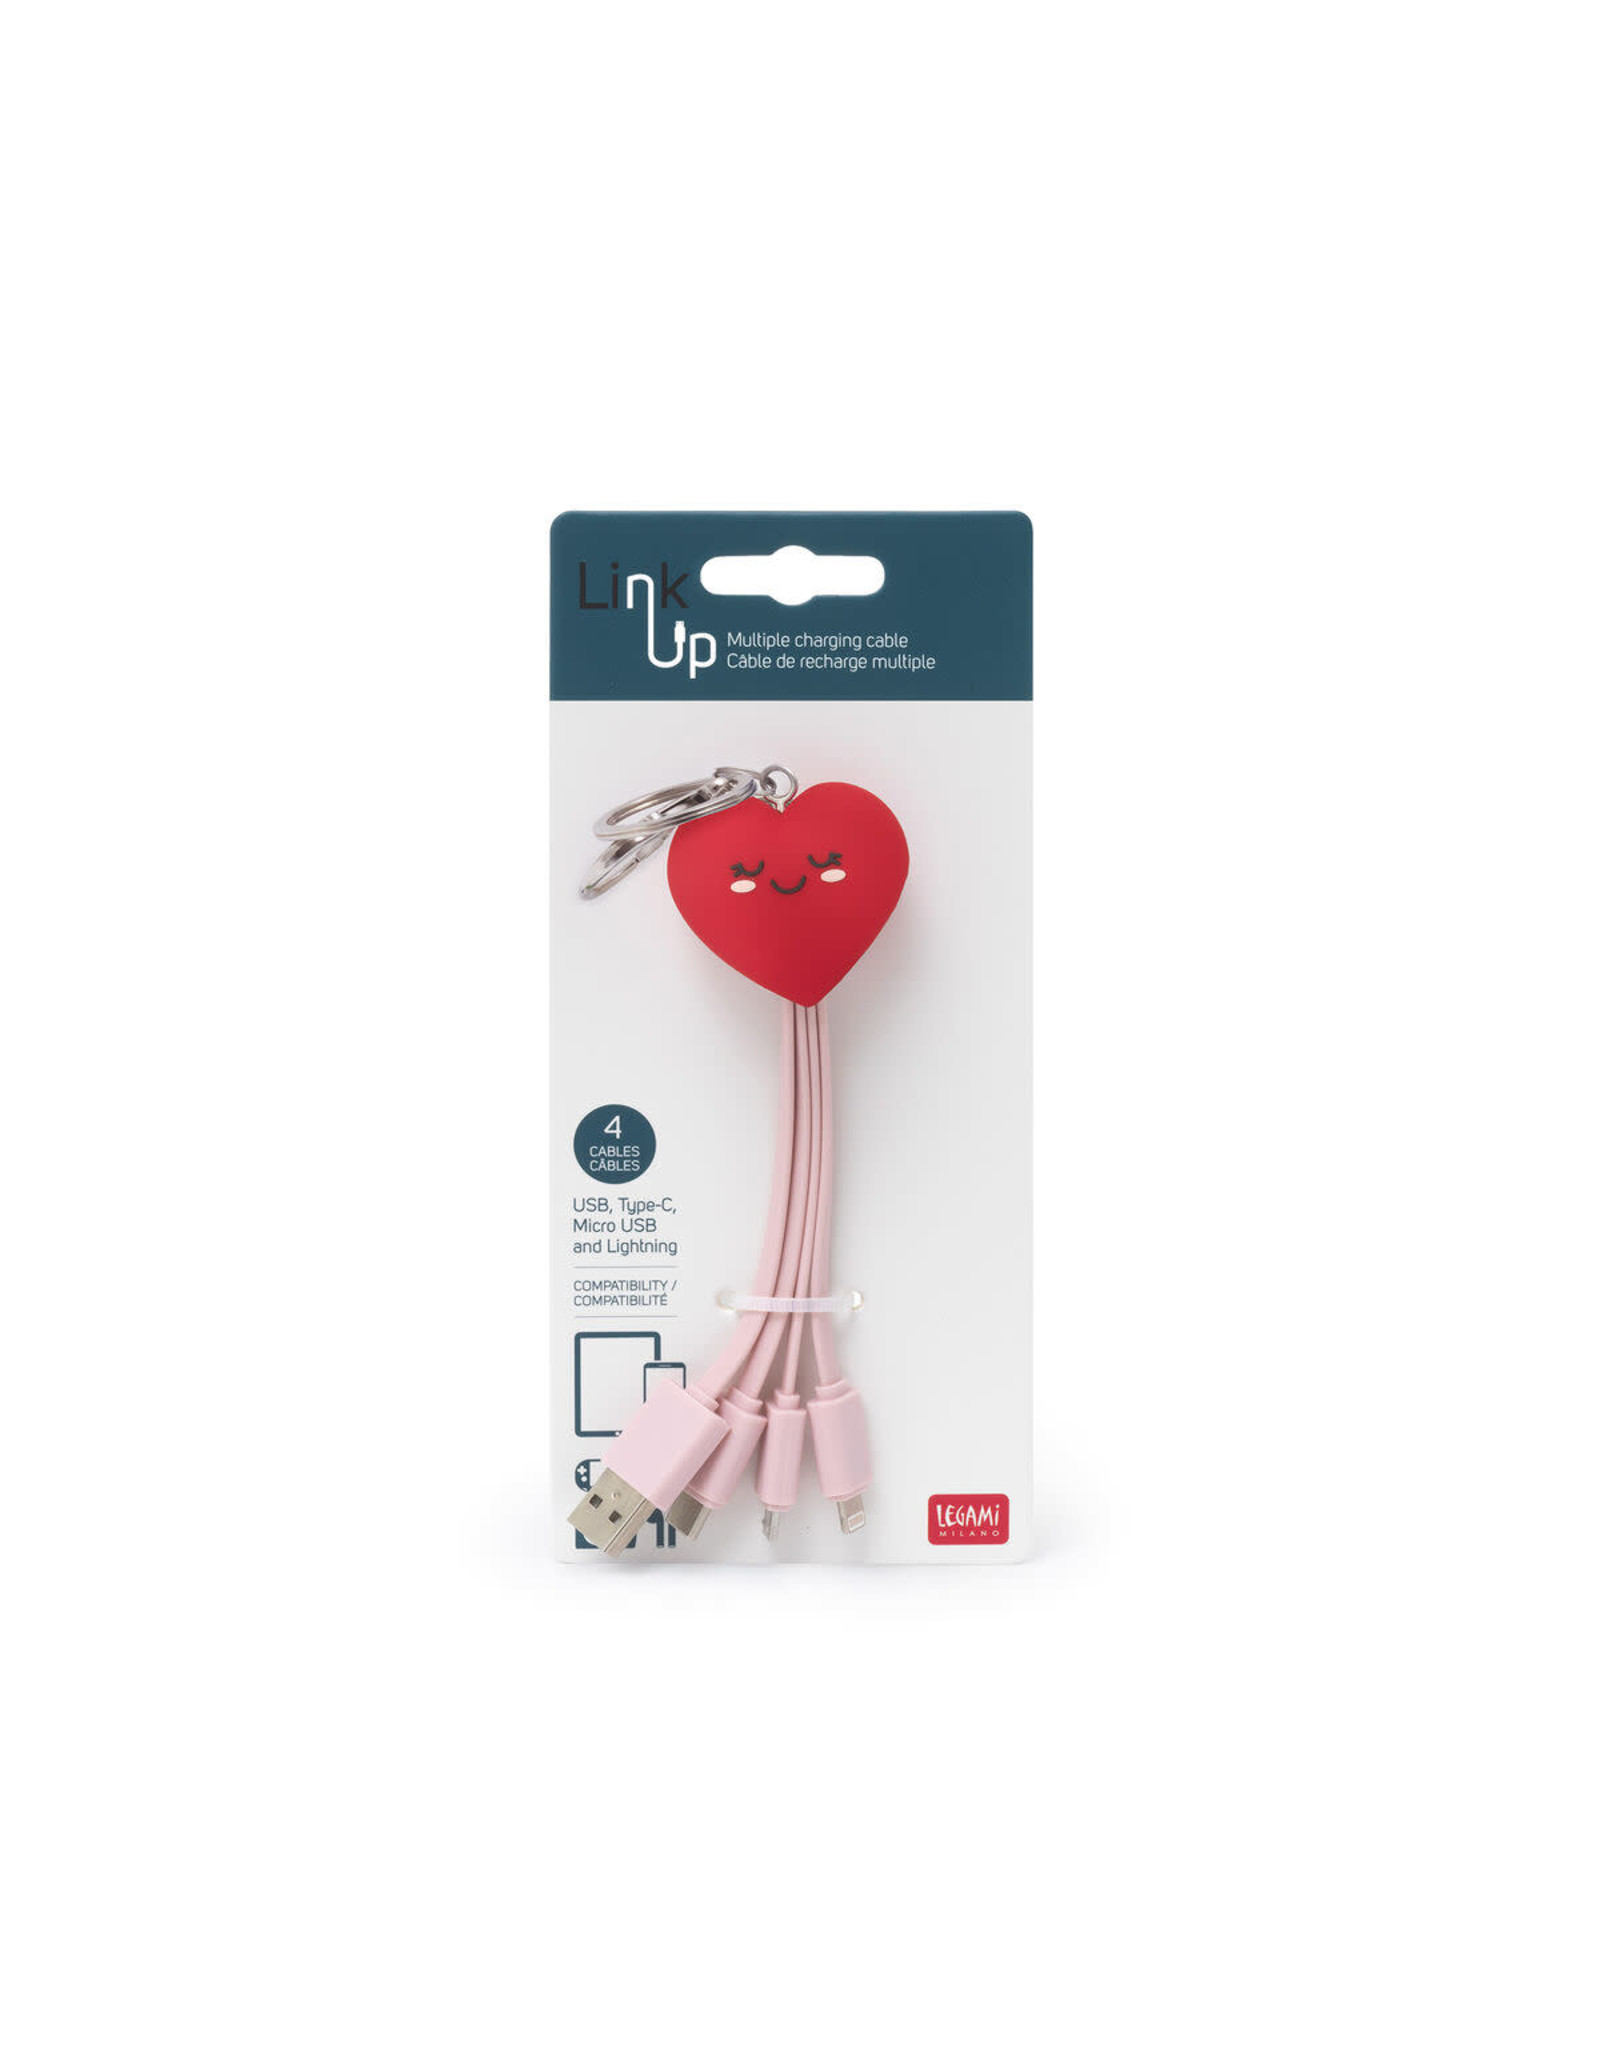 Legami multi charging cables - heart